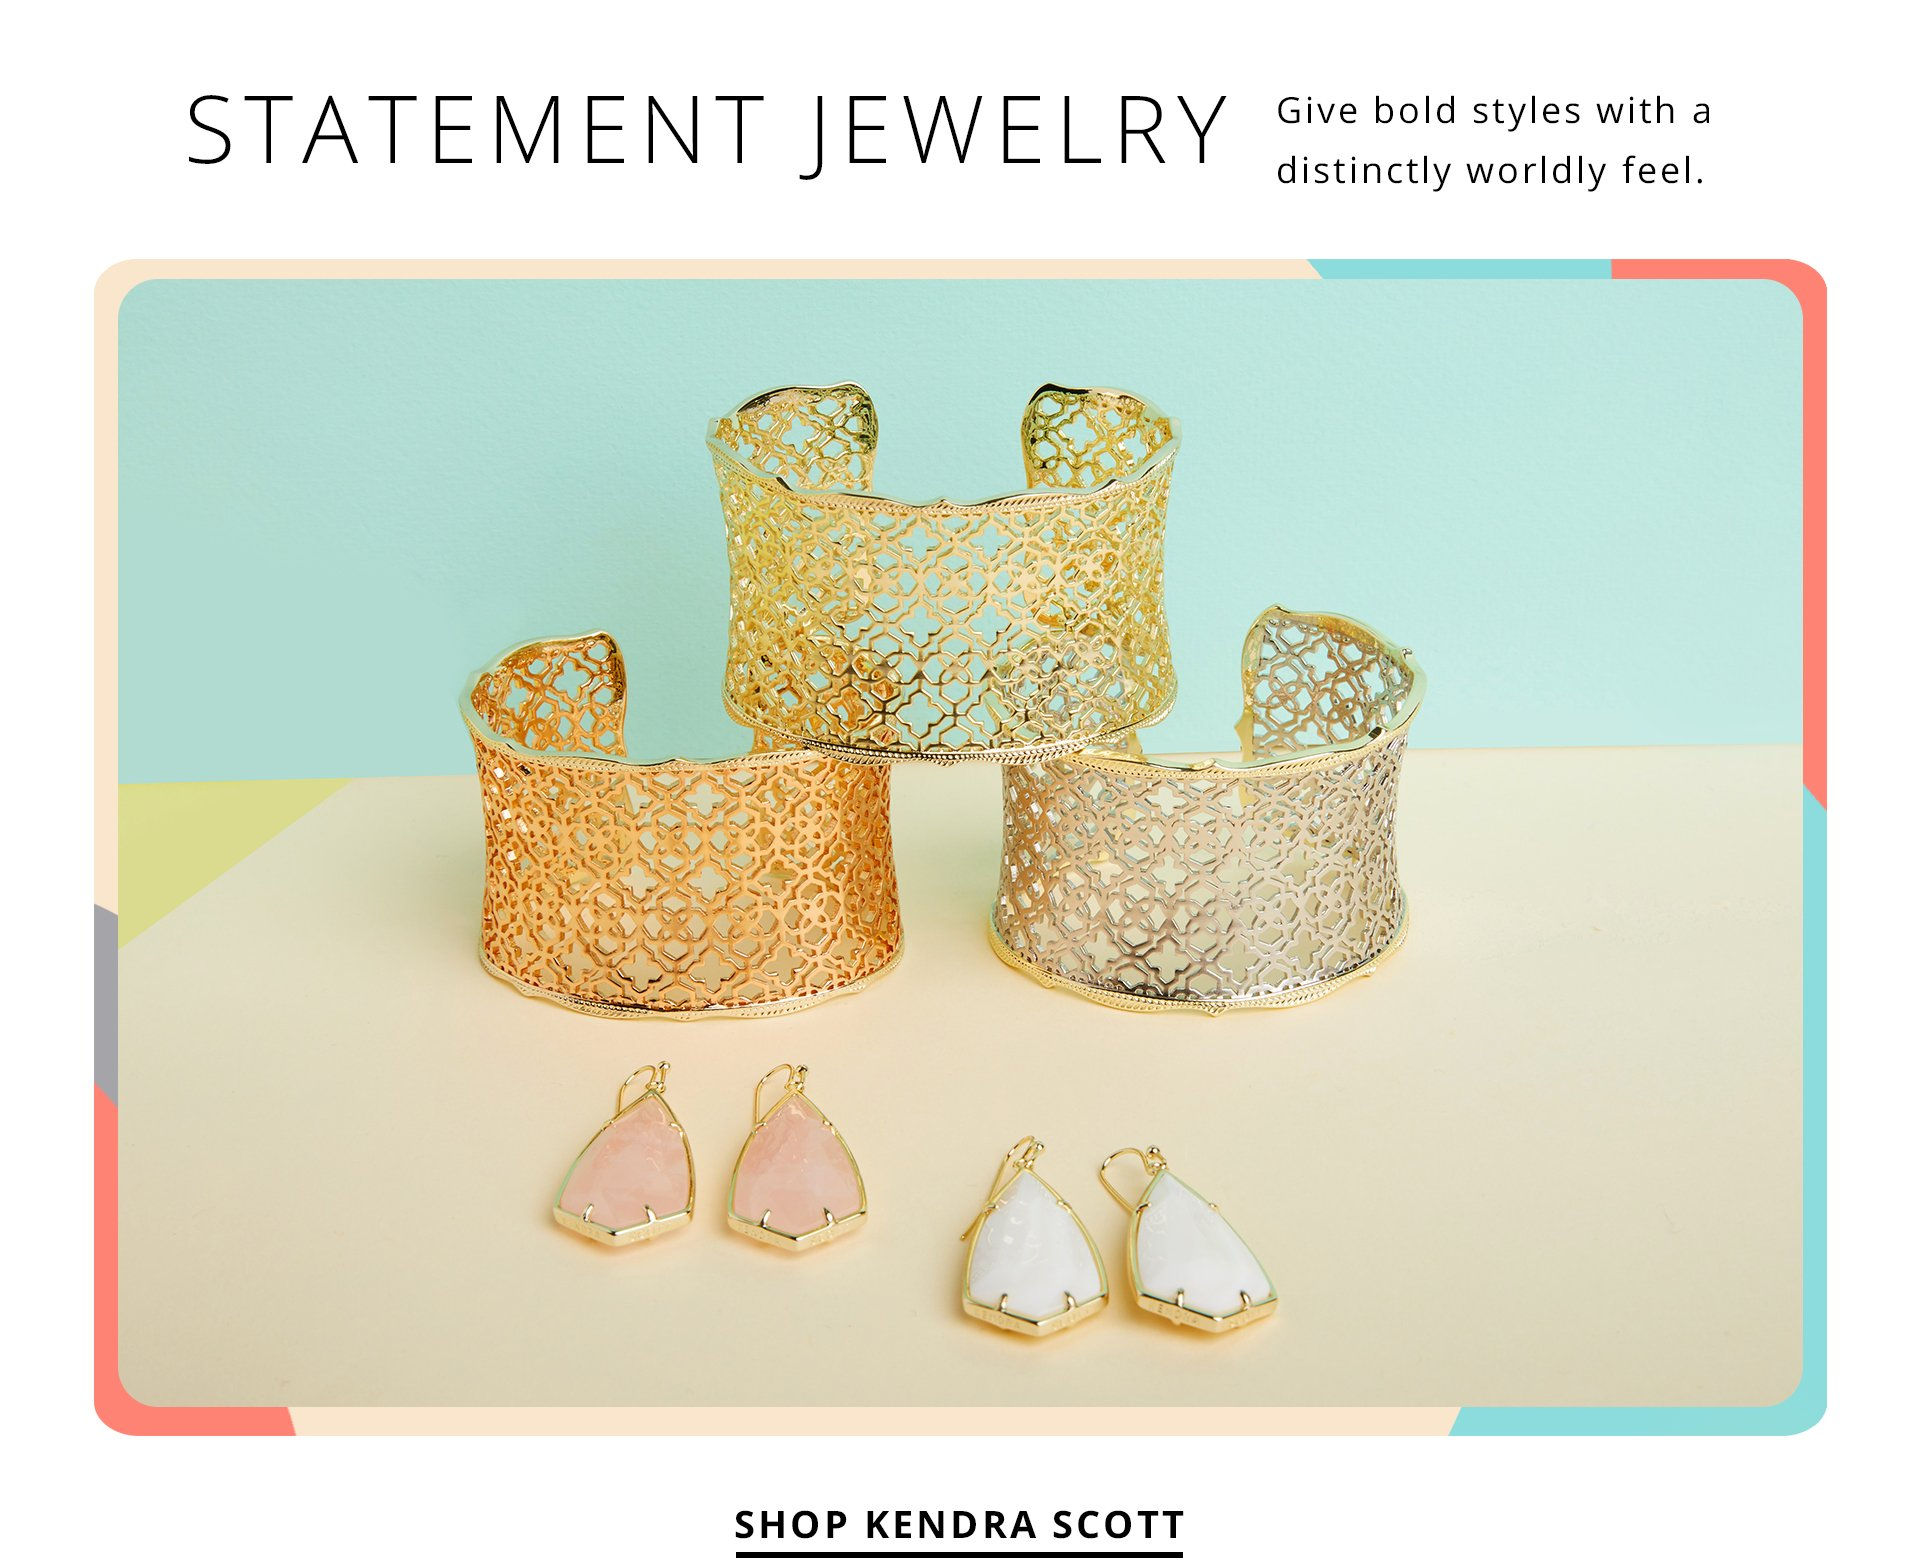 Statement jewelry. Give bold styles with a distinctly worldly feel. Shop Kendra Scott.